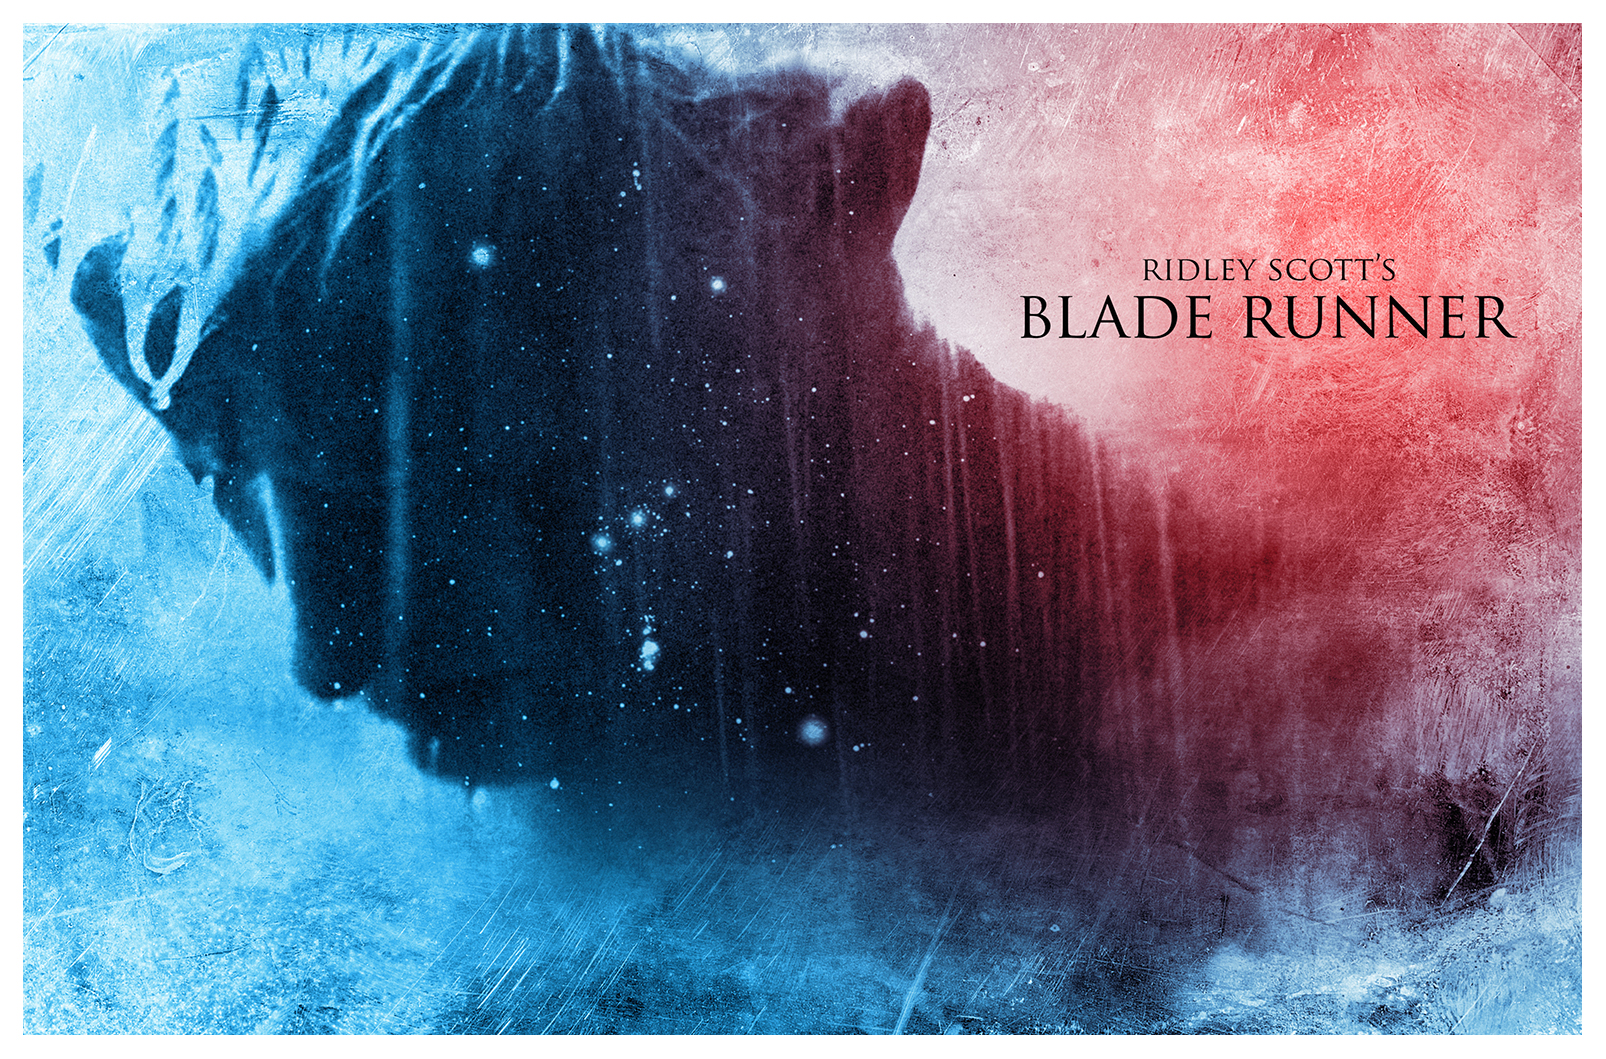 Rutgers Hauer as Roy Batty in Blade Runner. Poster by Alejandro Ovalles